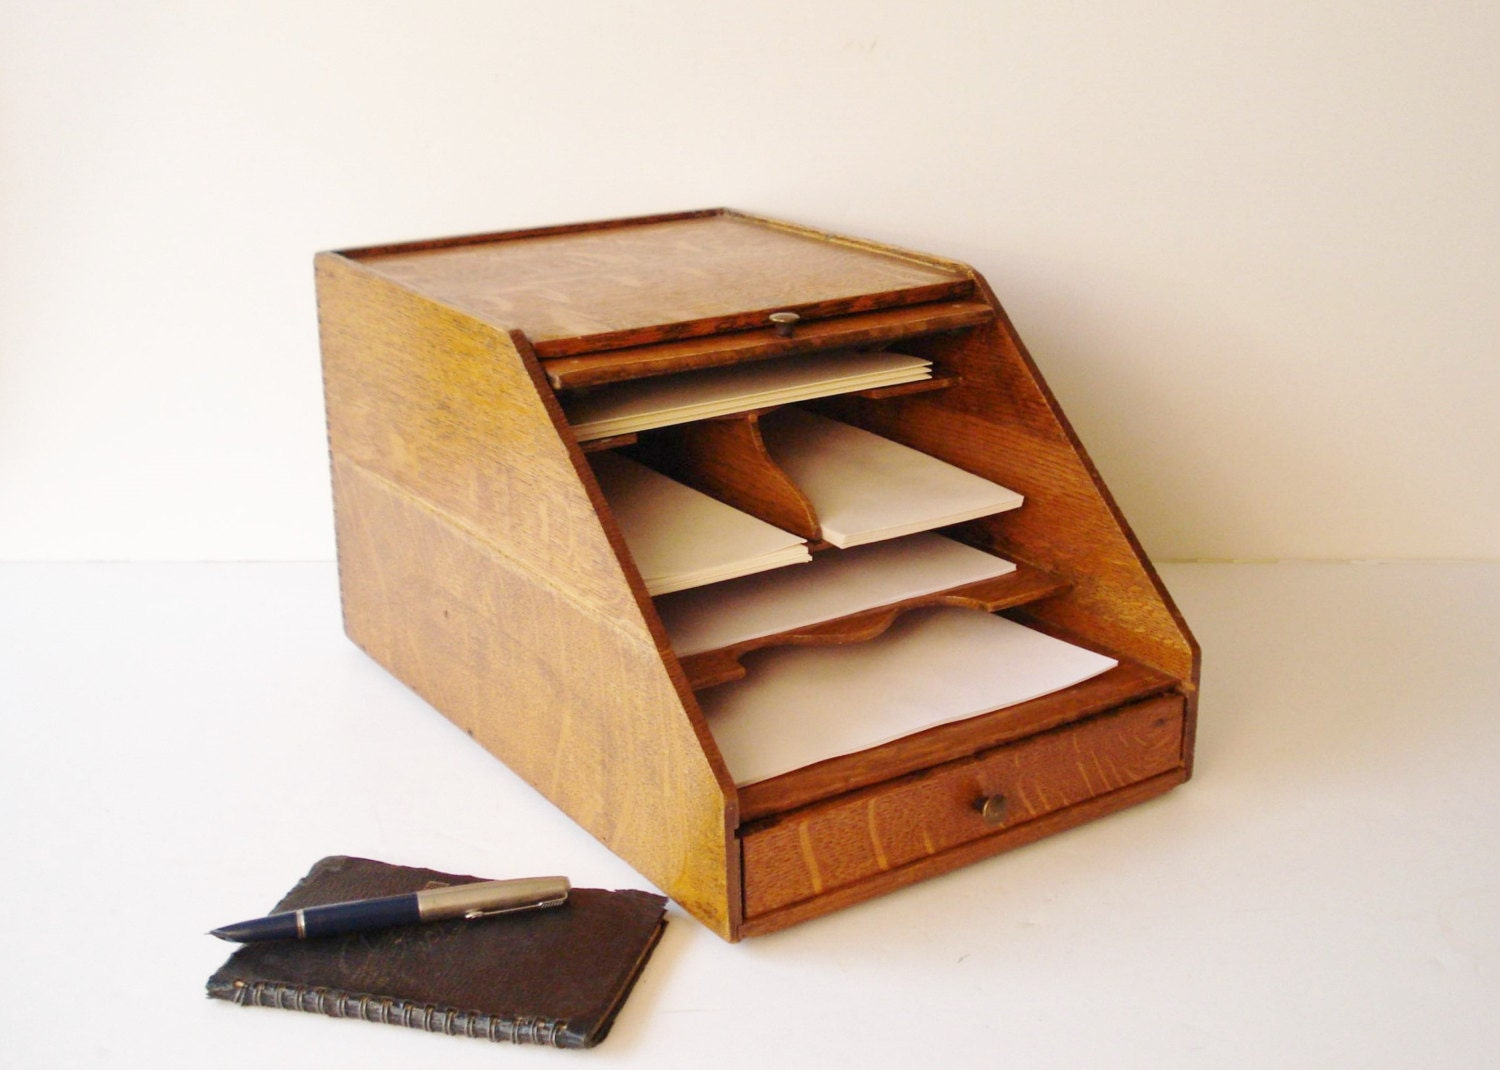 Antique desk stationery organizer weis letter sorter - Desk stationery organiser ...